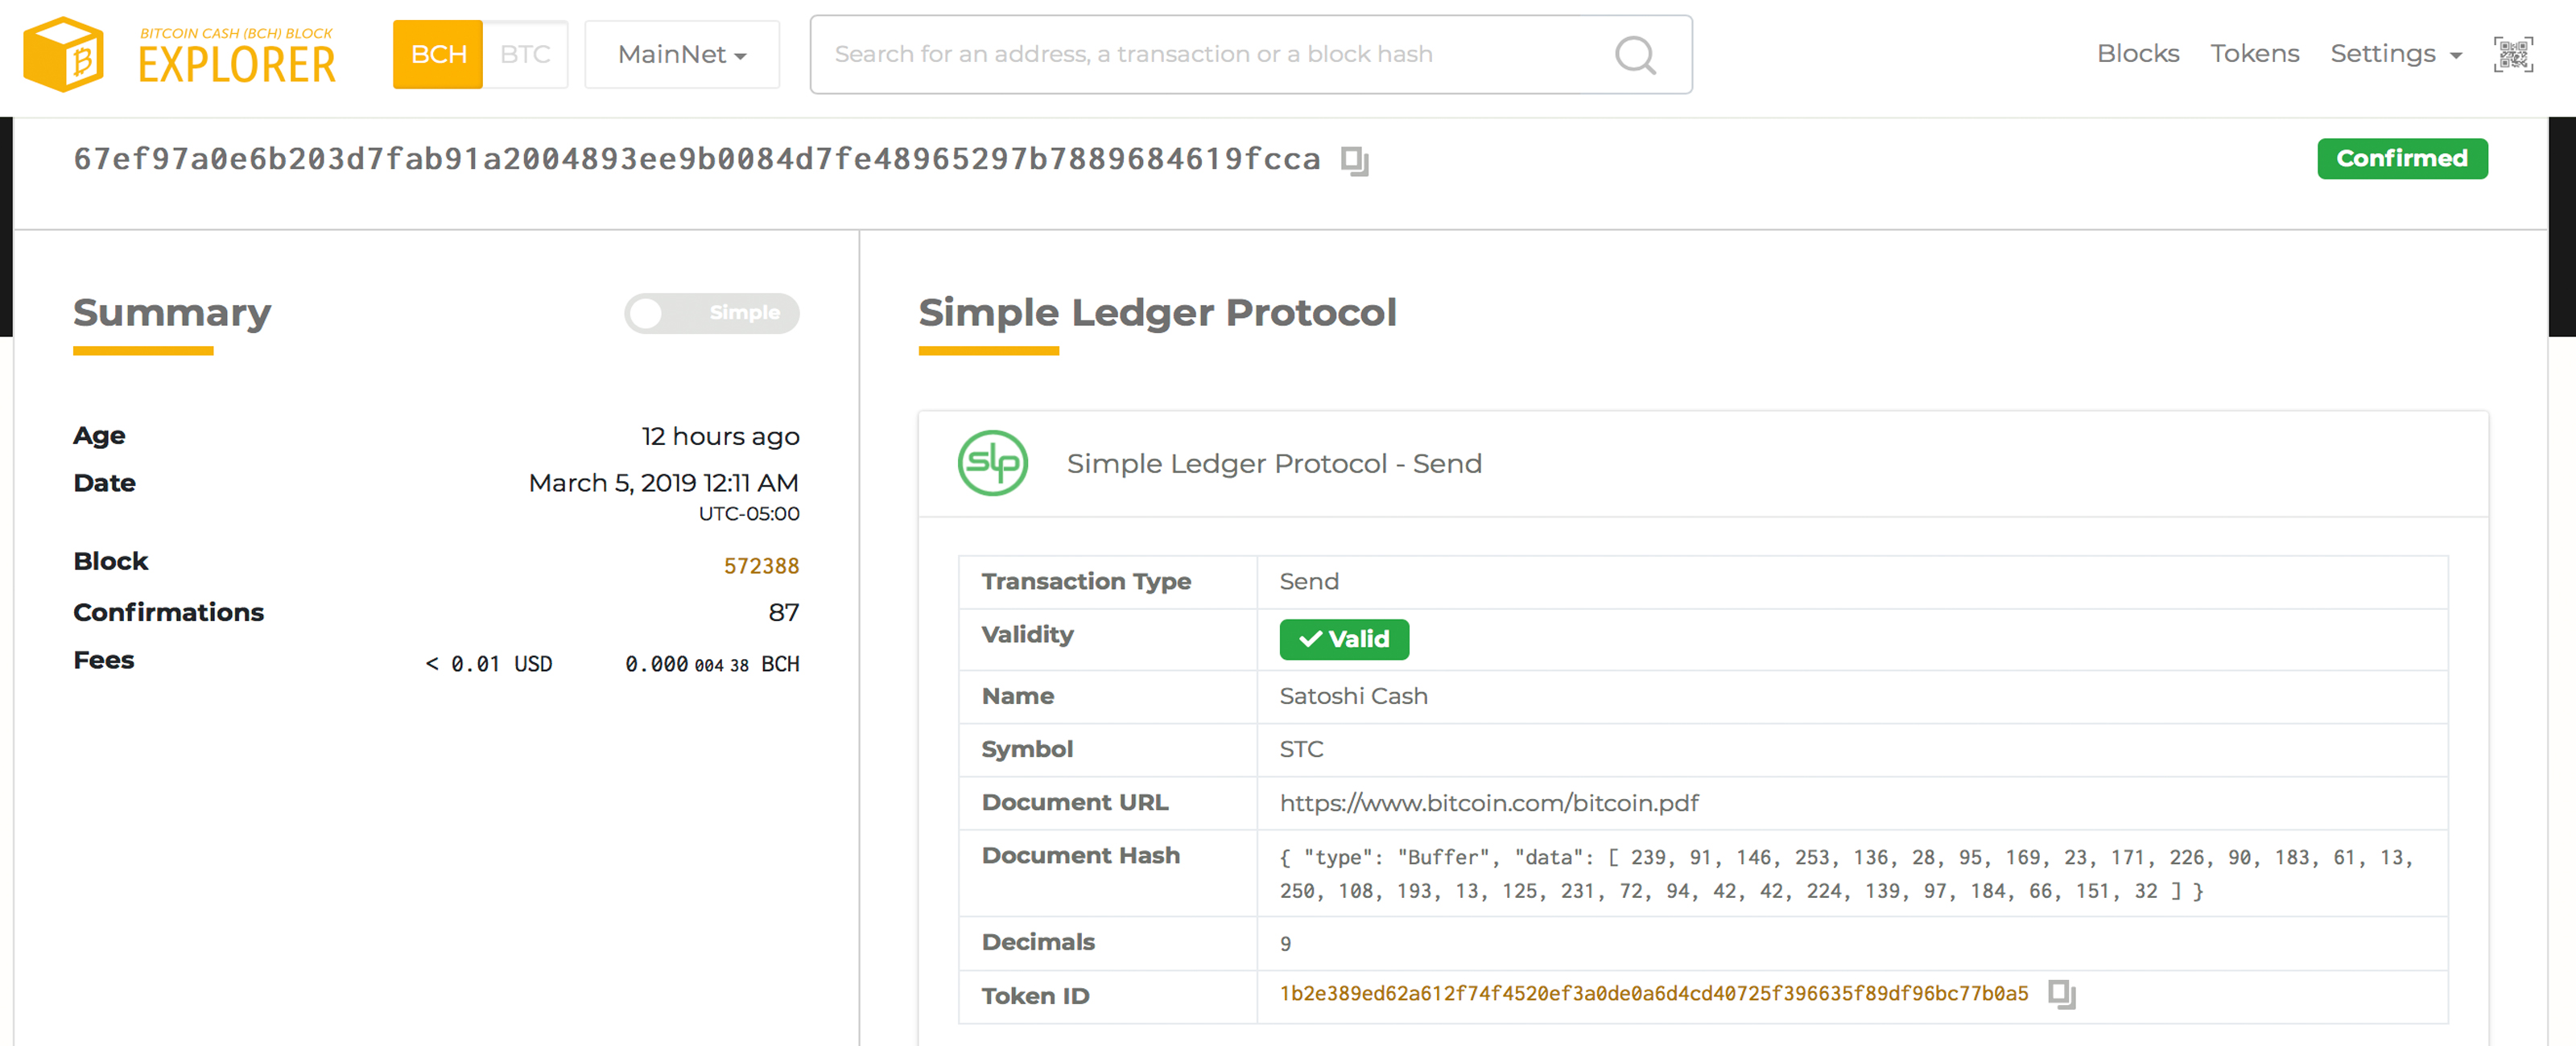 How to Create Your Own SLP Token Using the Bitcoin Cash Blockchain